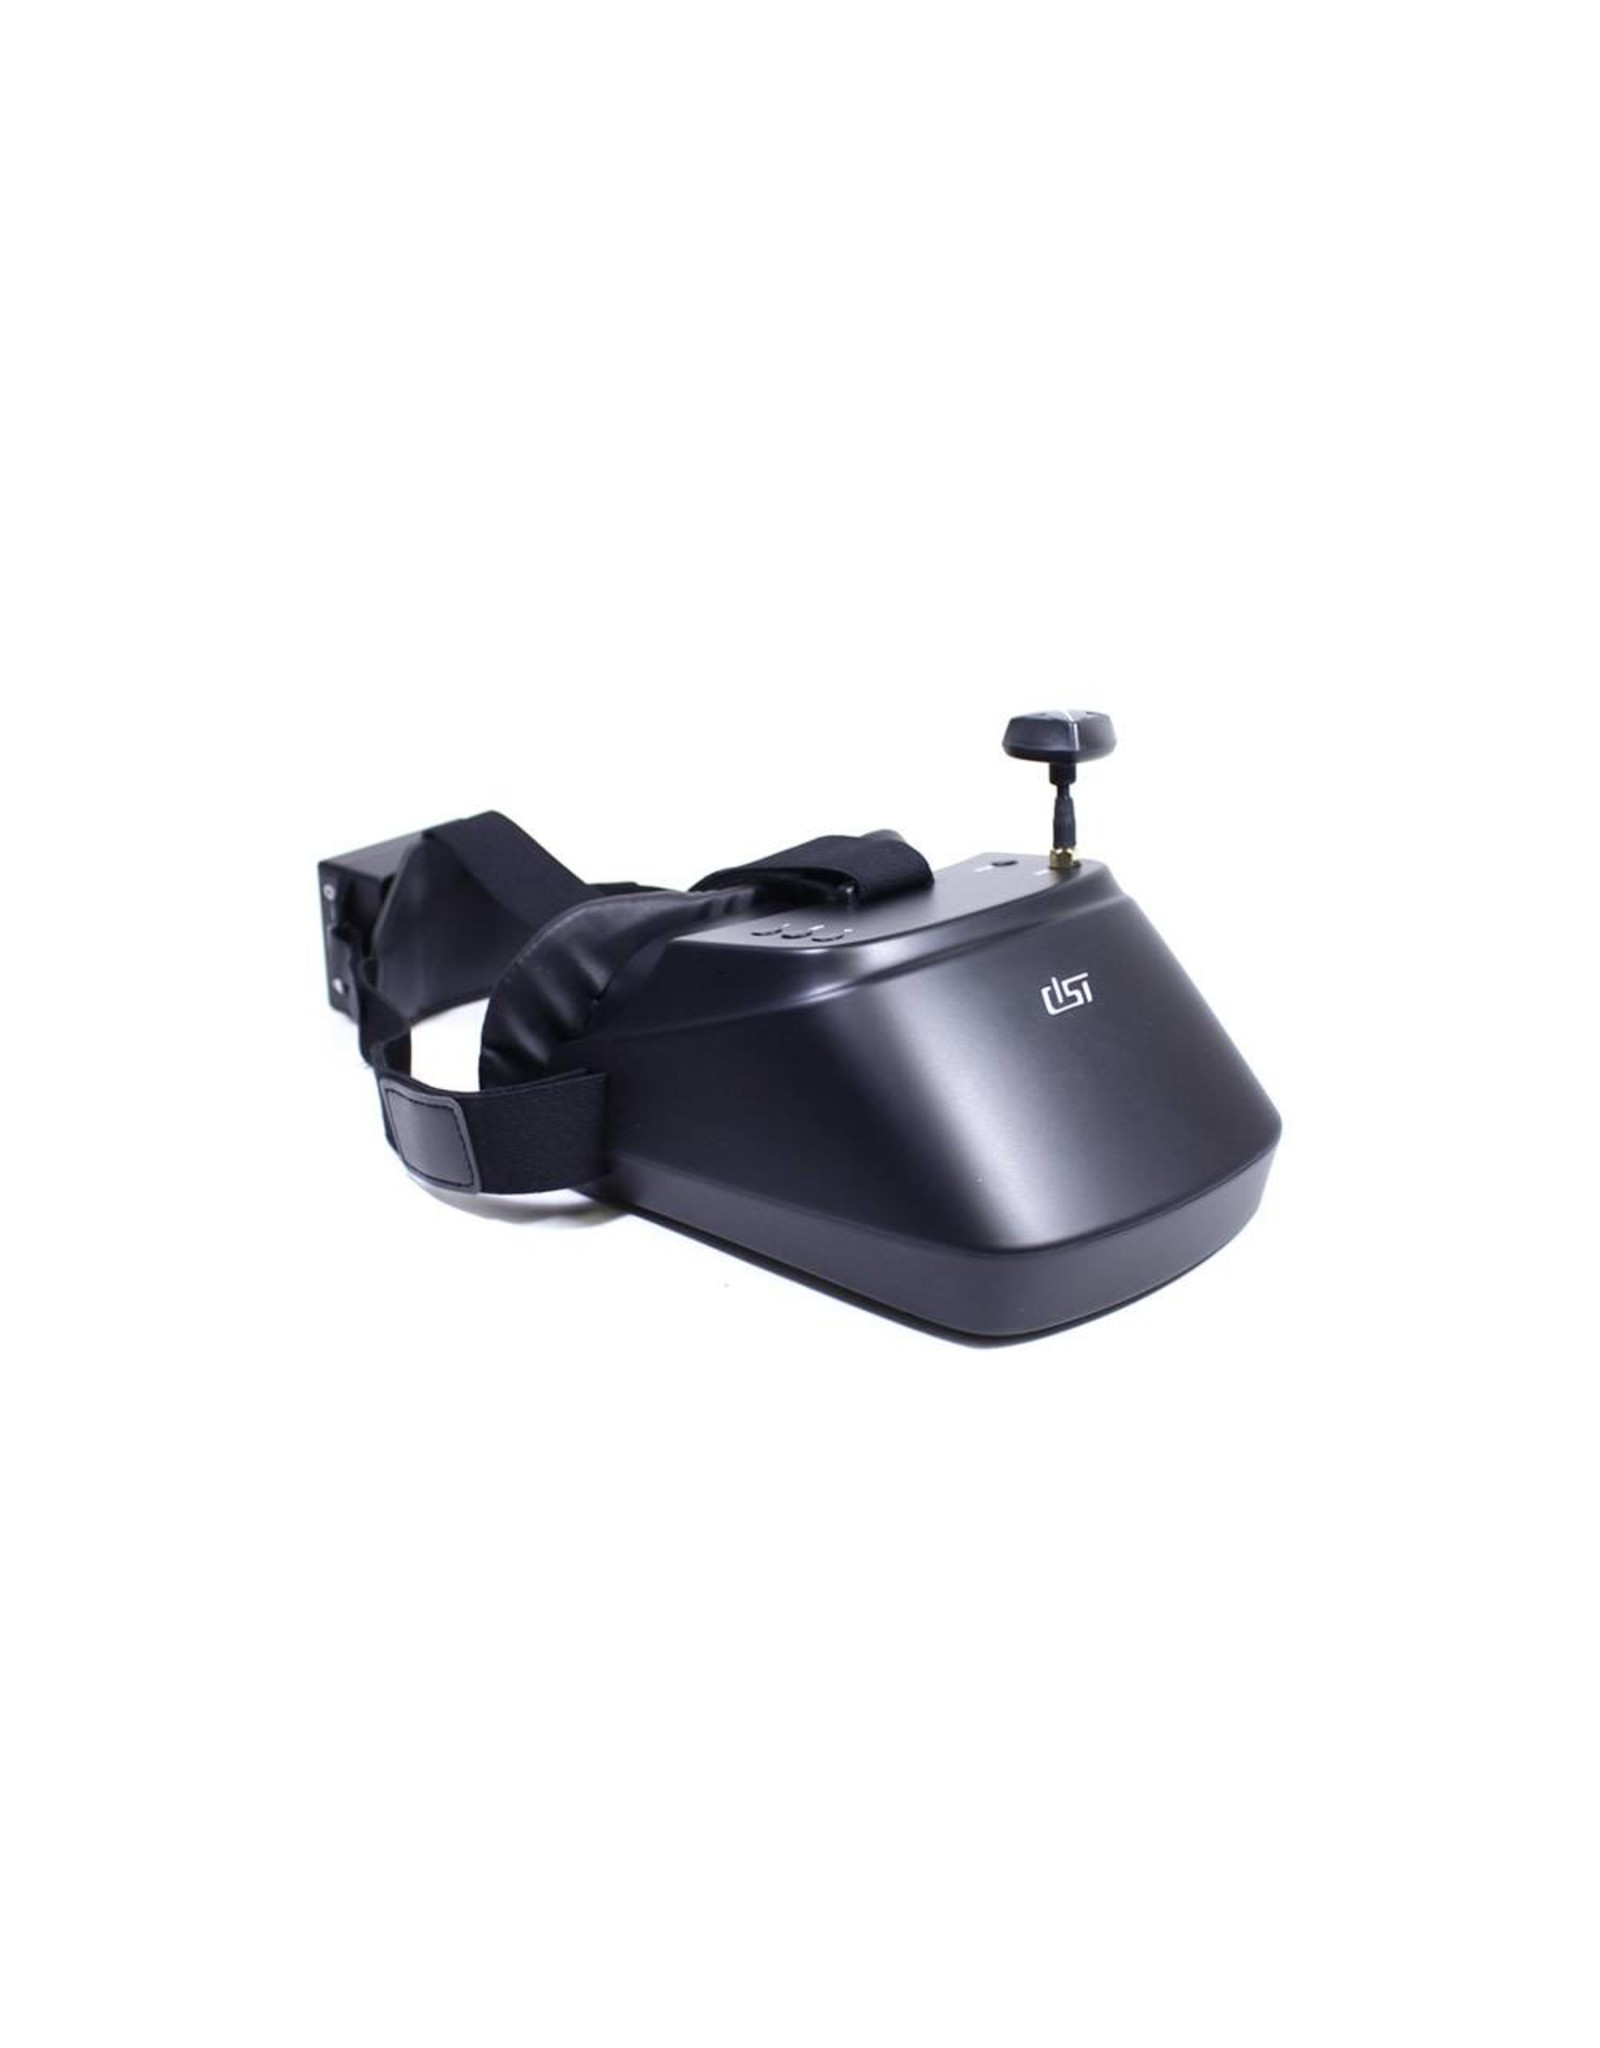 DST DST - 5.8 GHZ FPV GOGGLES WITH INCLUDED 2S LIPO AND CHARGER (DSTFPV-01)